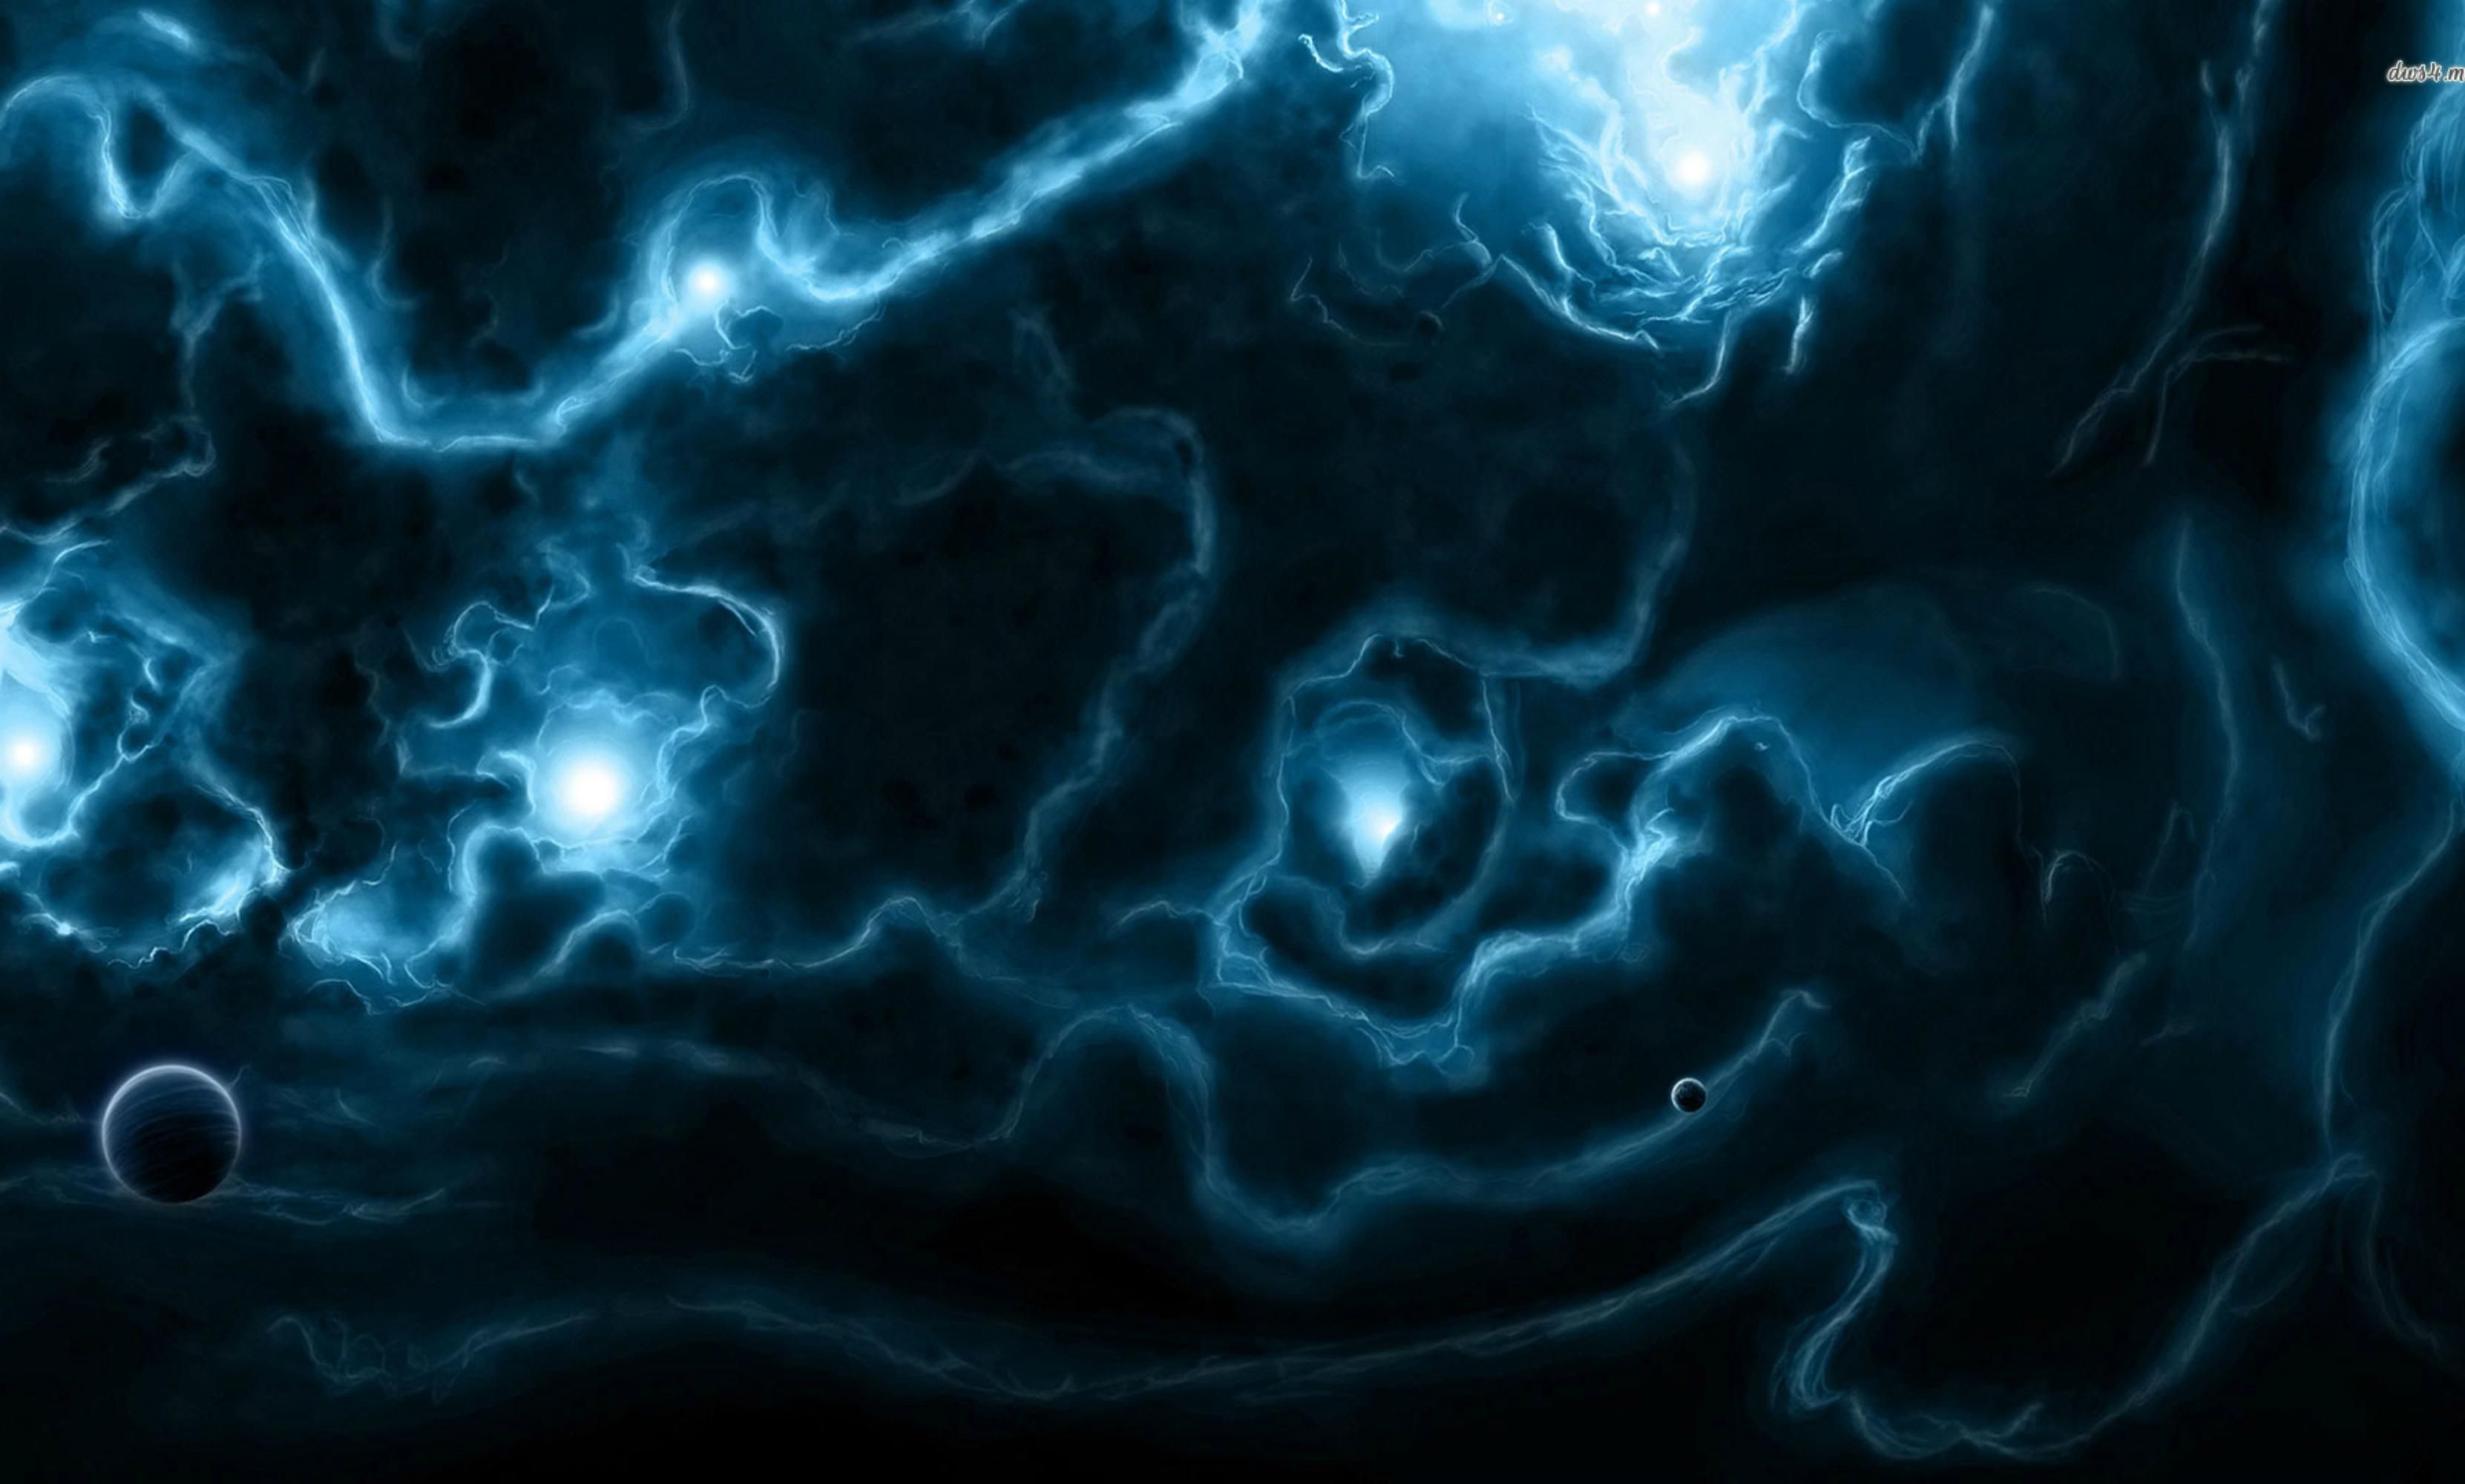 Space lightning – (#163187) – High Quality and Resolution .